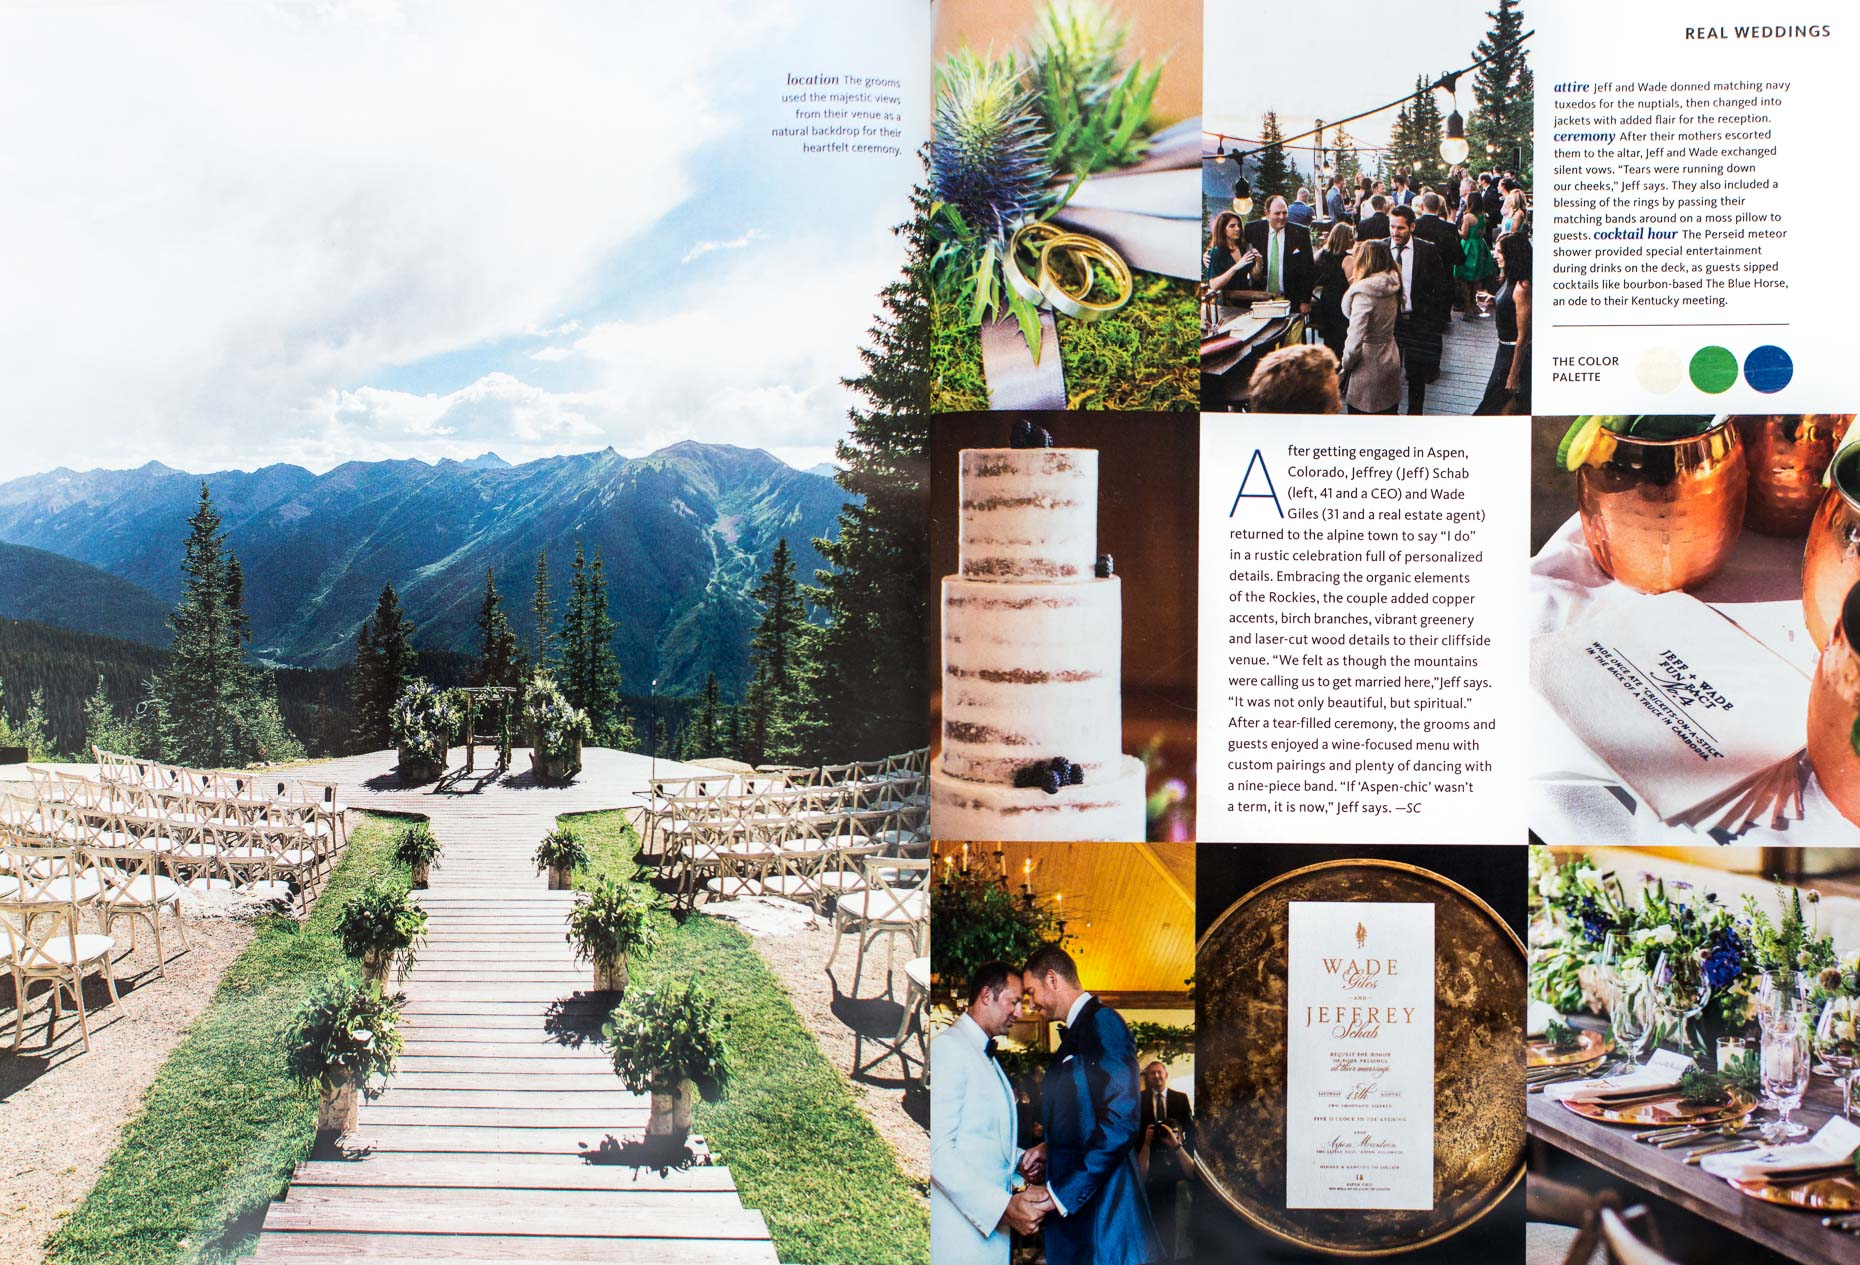 054_TheKnot_spread3_summer2017